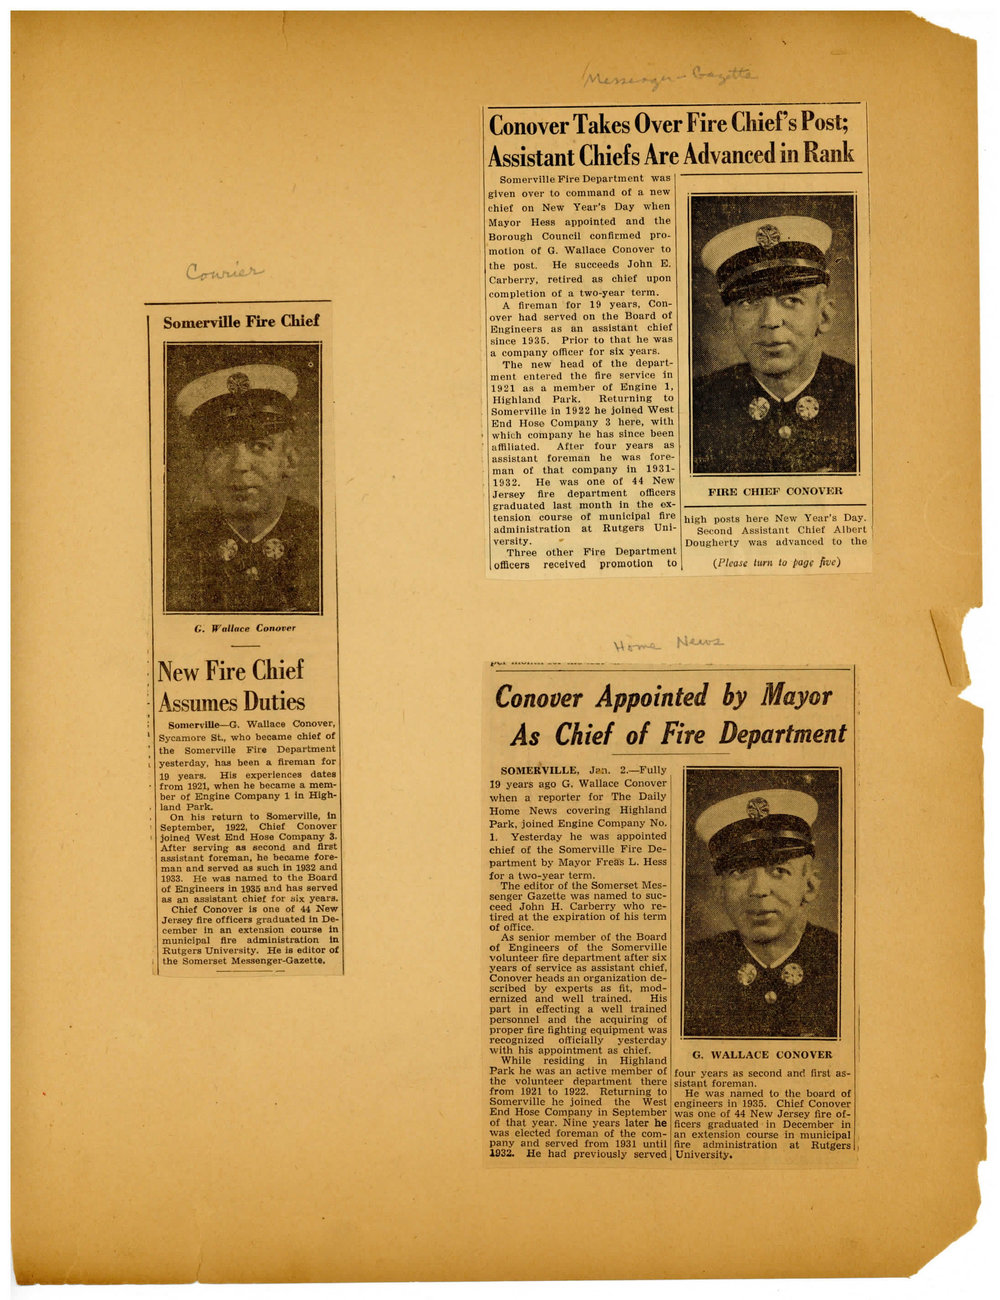 1940s Fire Chief Conover Scrap Book 1st half_Page_01_Image_0001.jpg